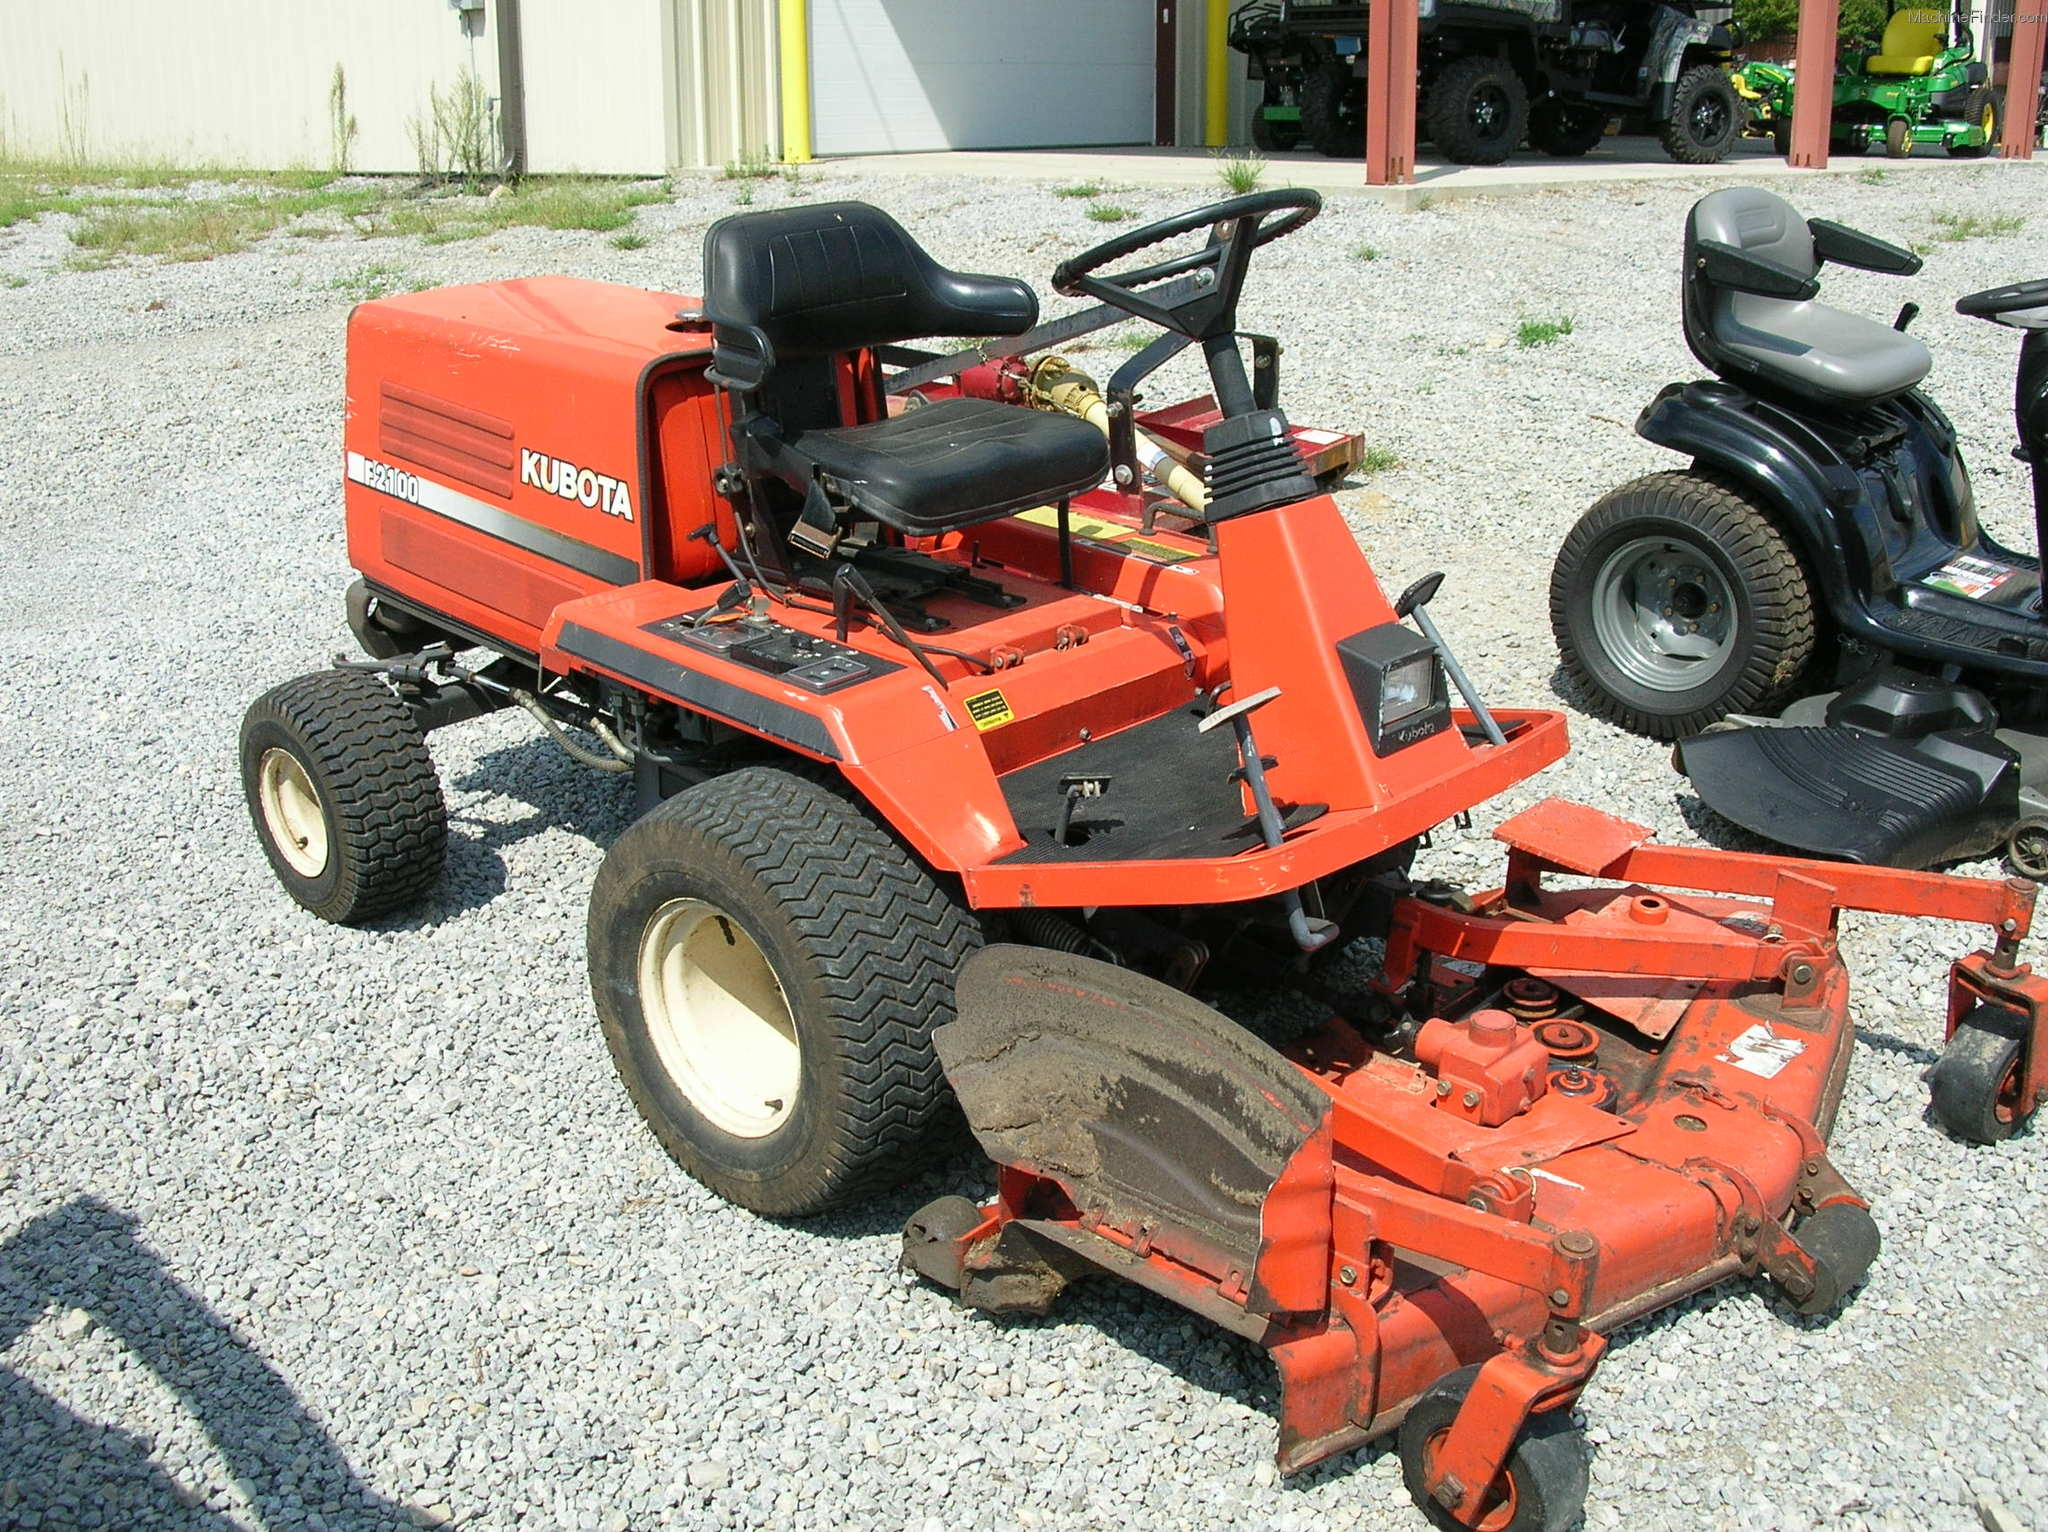 Kubota Lawn Tractors T1760 Wiring Diagram And Commercial Mowing F2100 Hours 1541 Status On Lot